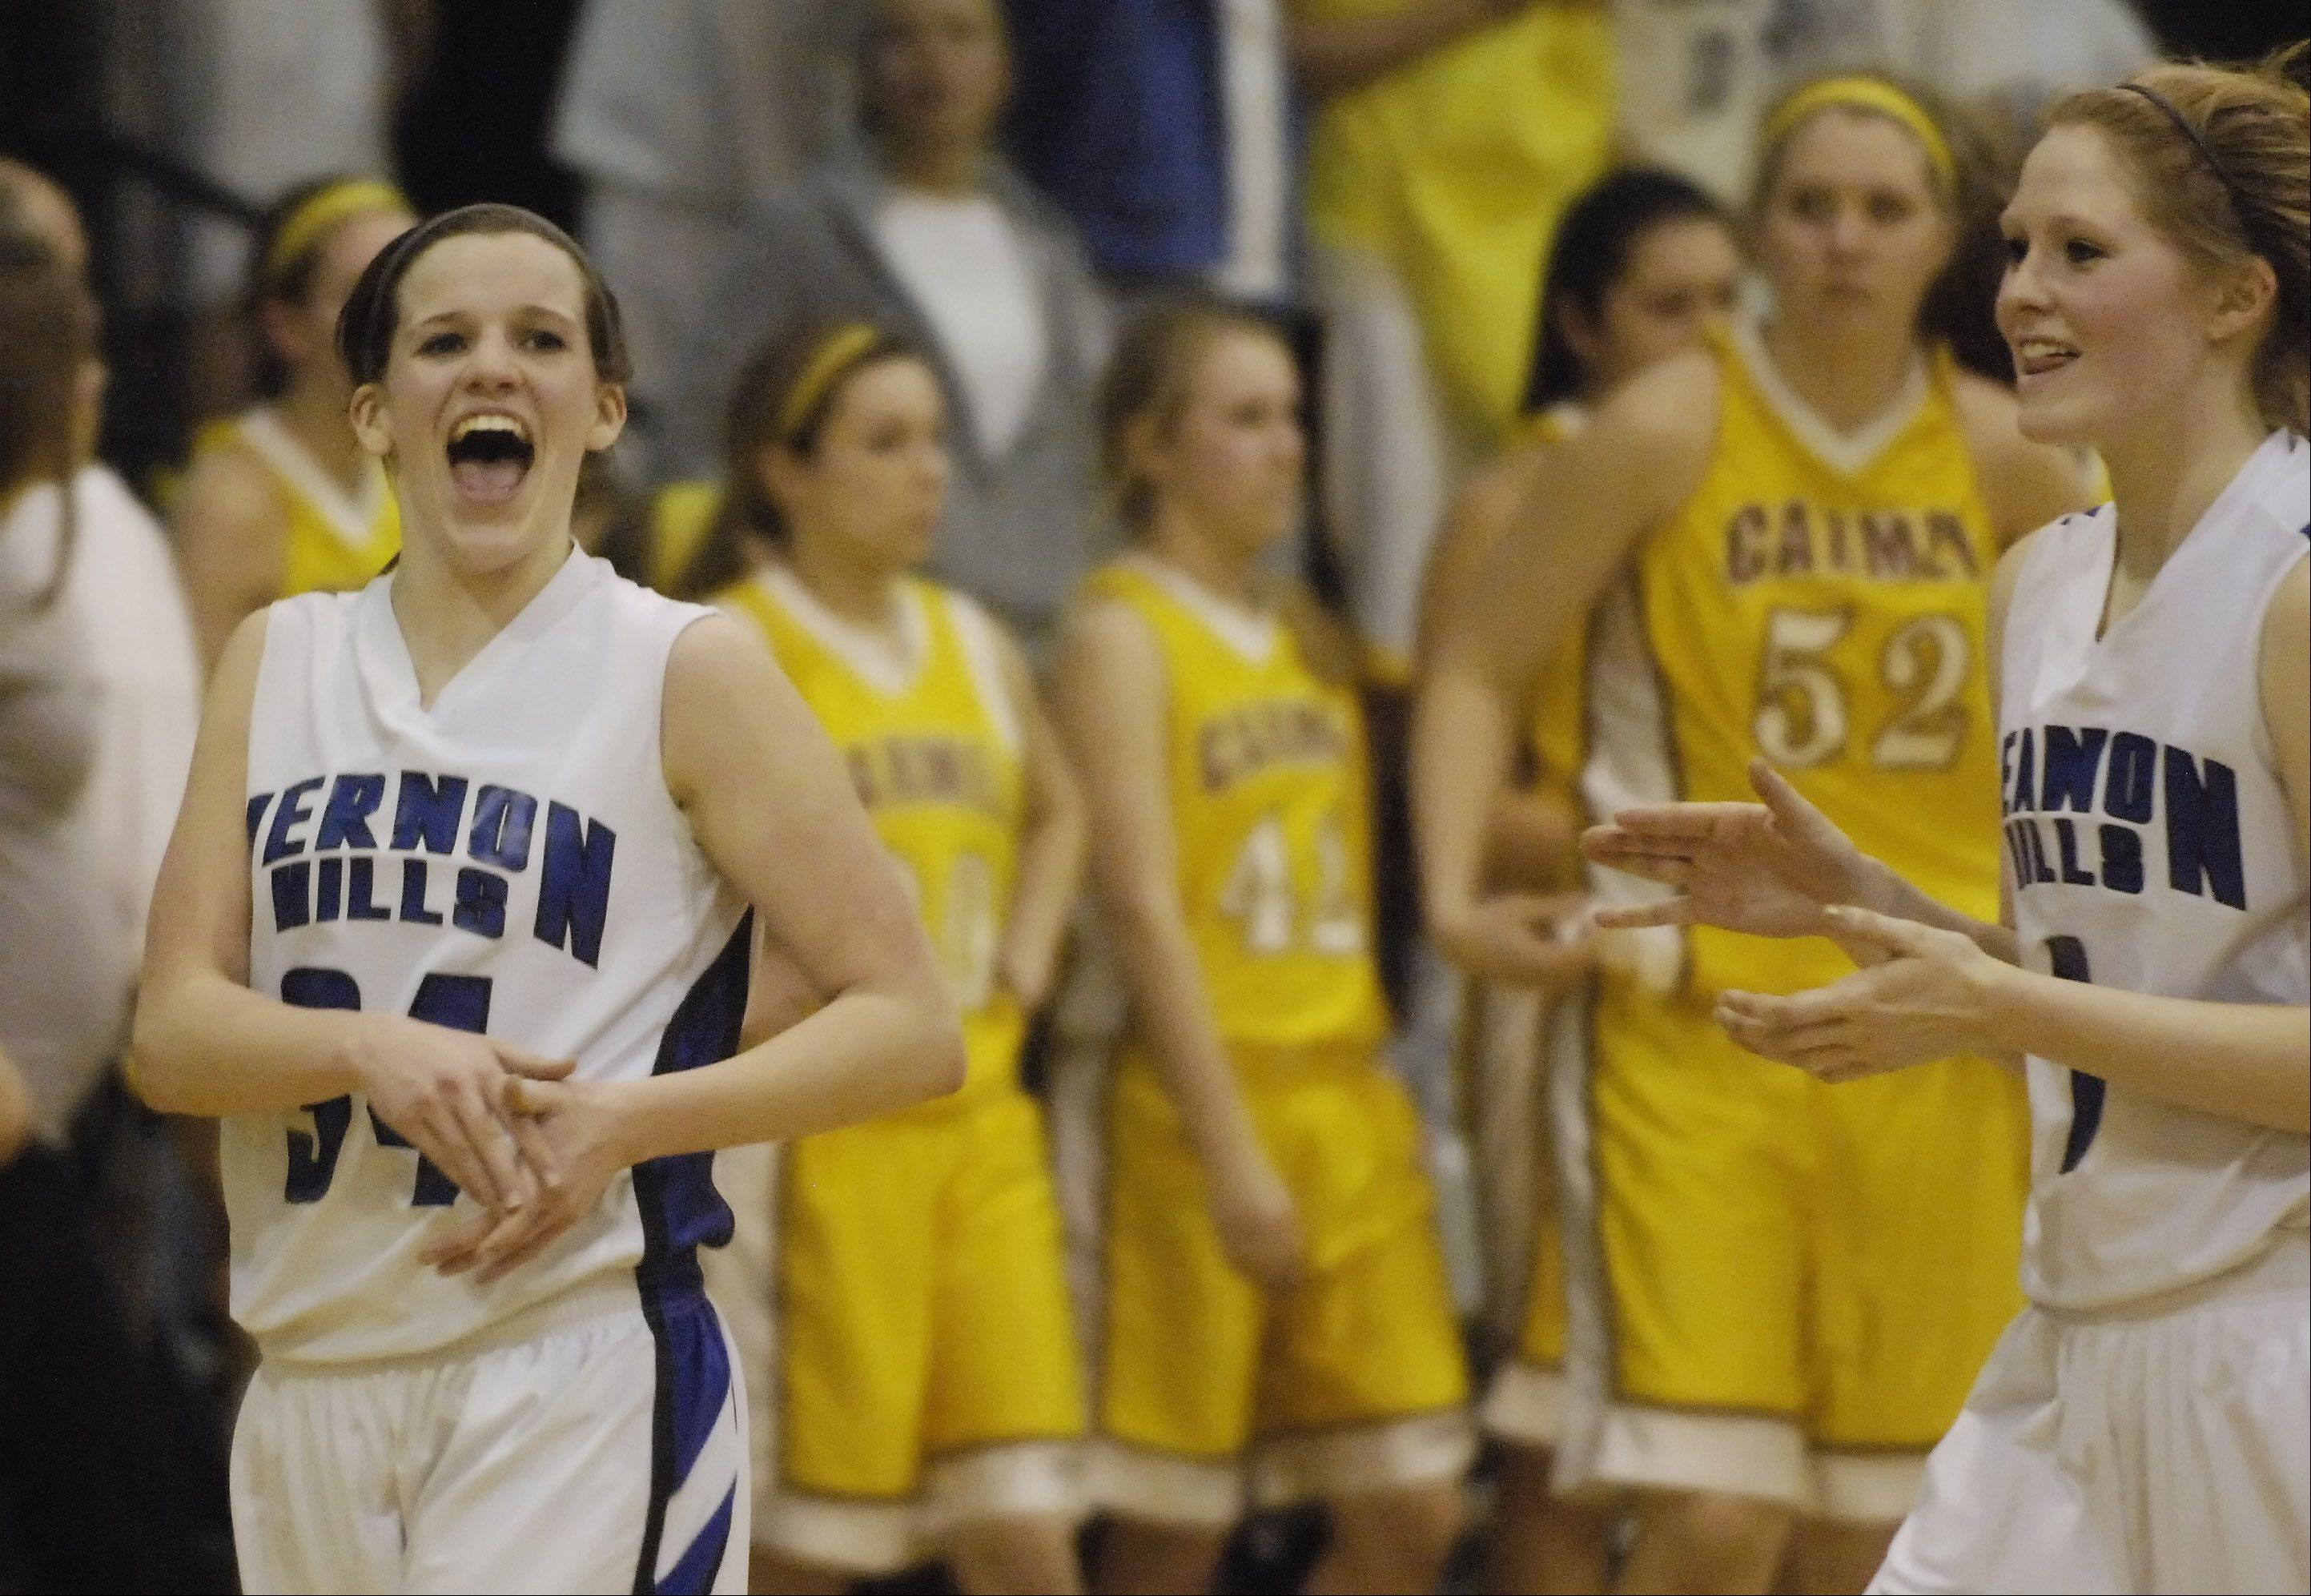 Vernon Hills' Abby Springer, left, and teammate Sydney Smith celebrate their team's victory over Carmel during the Class 3A girls basketball sectional semifinal game Tuesday at St. Viator High School in Arlington Heights.